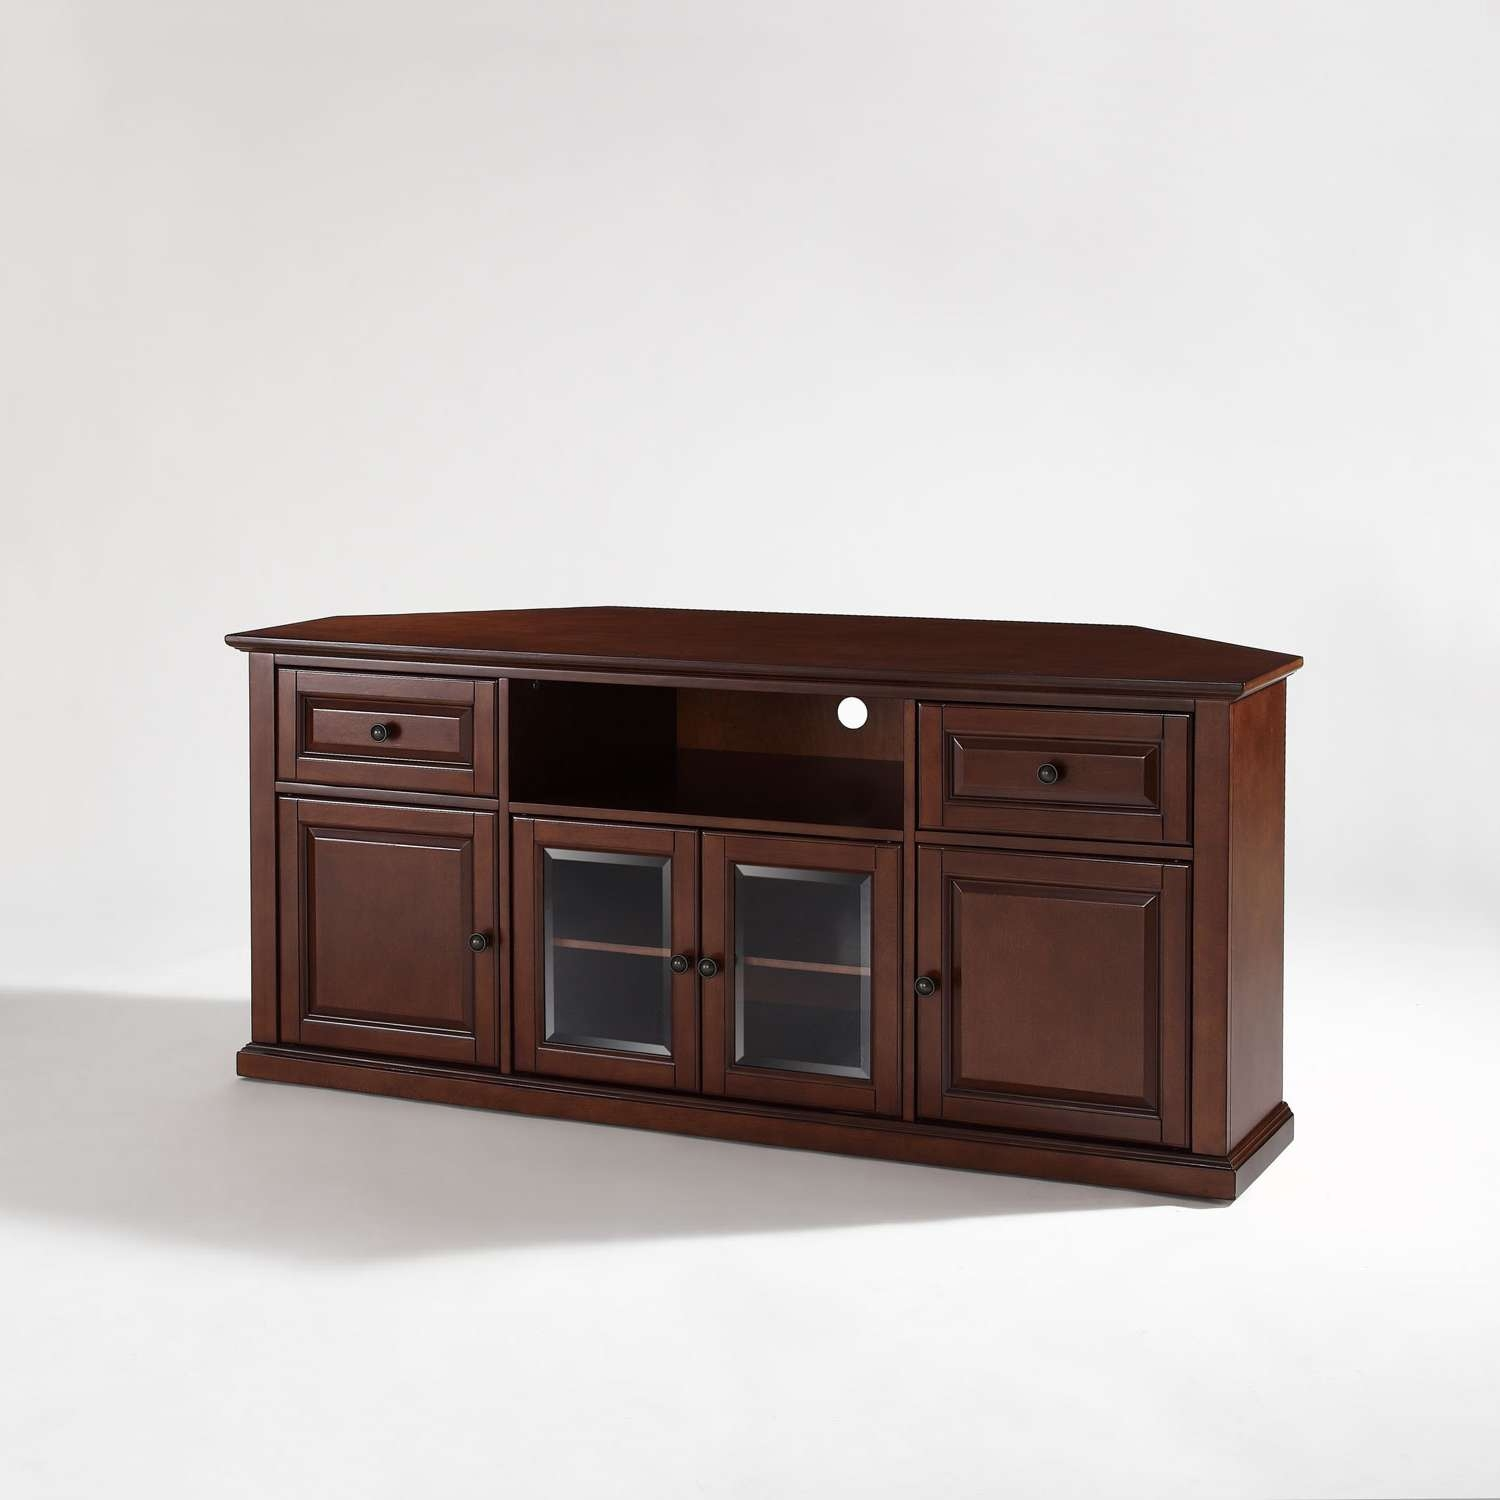 60 Inch Corner Tv Stand In Vintage Mahogany Crosley Furniture With Regard To Corner Tv Cabinets (View 1 of 20)